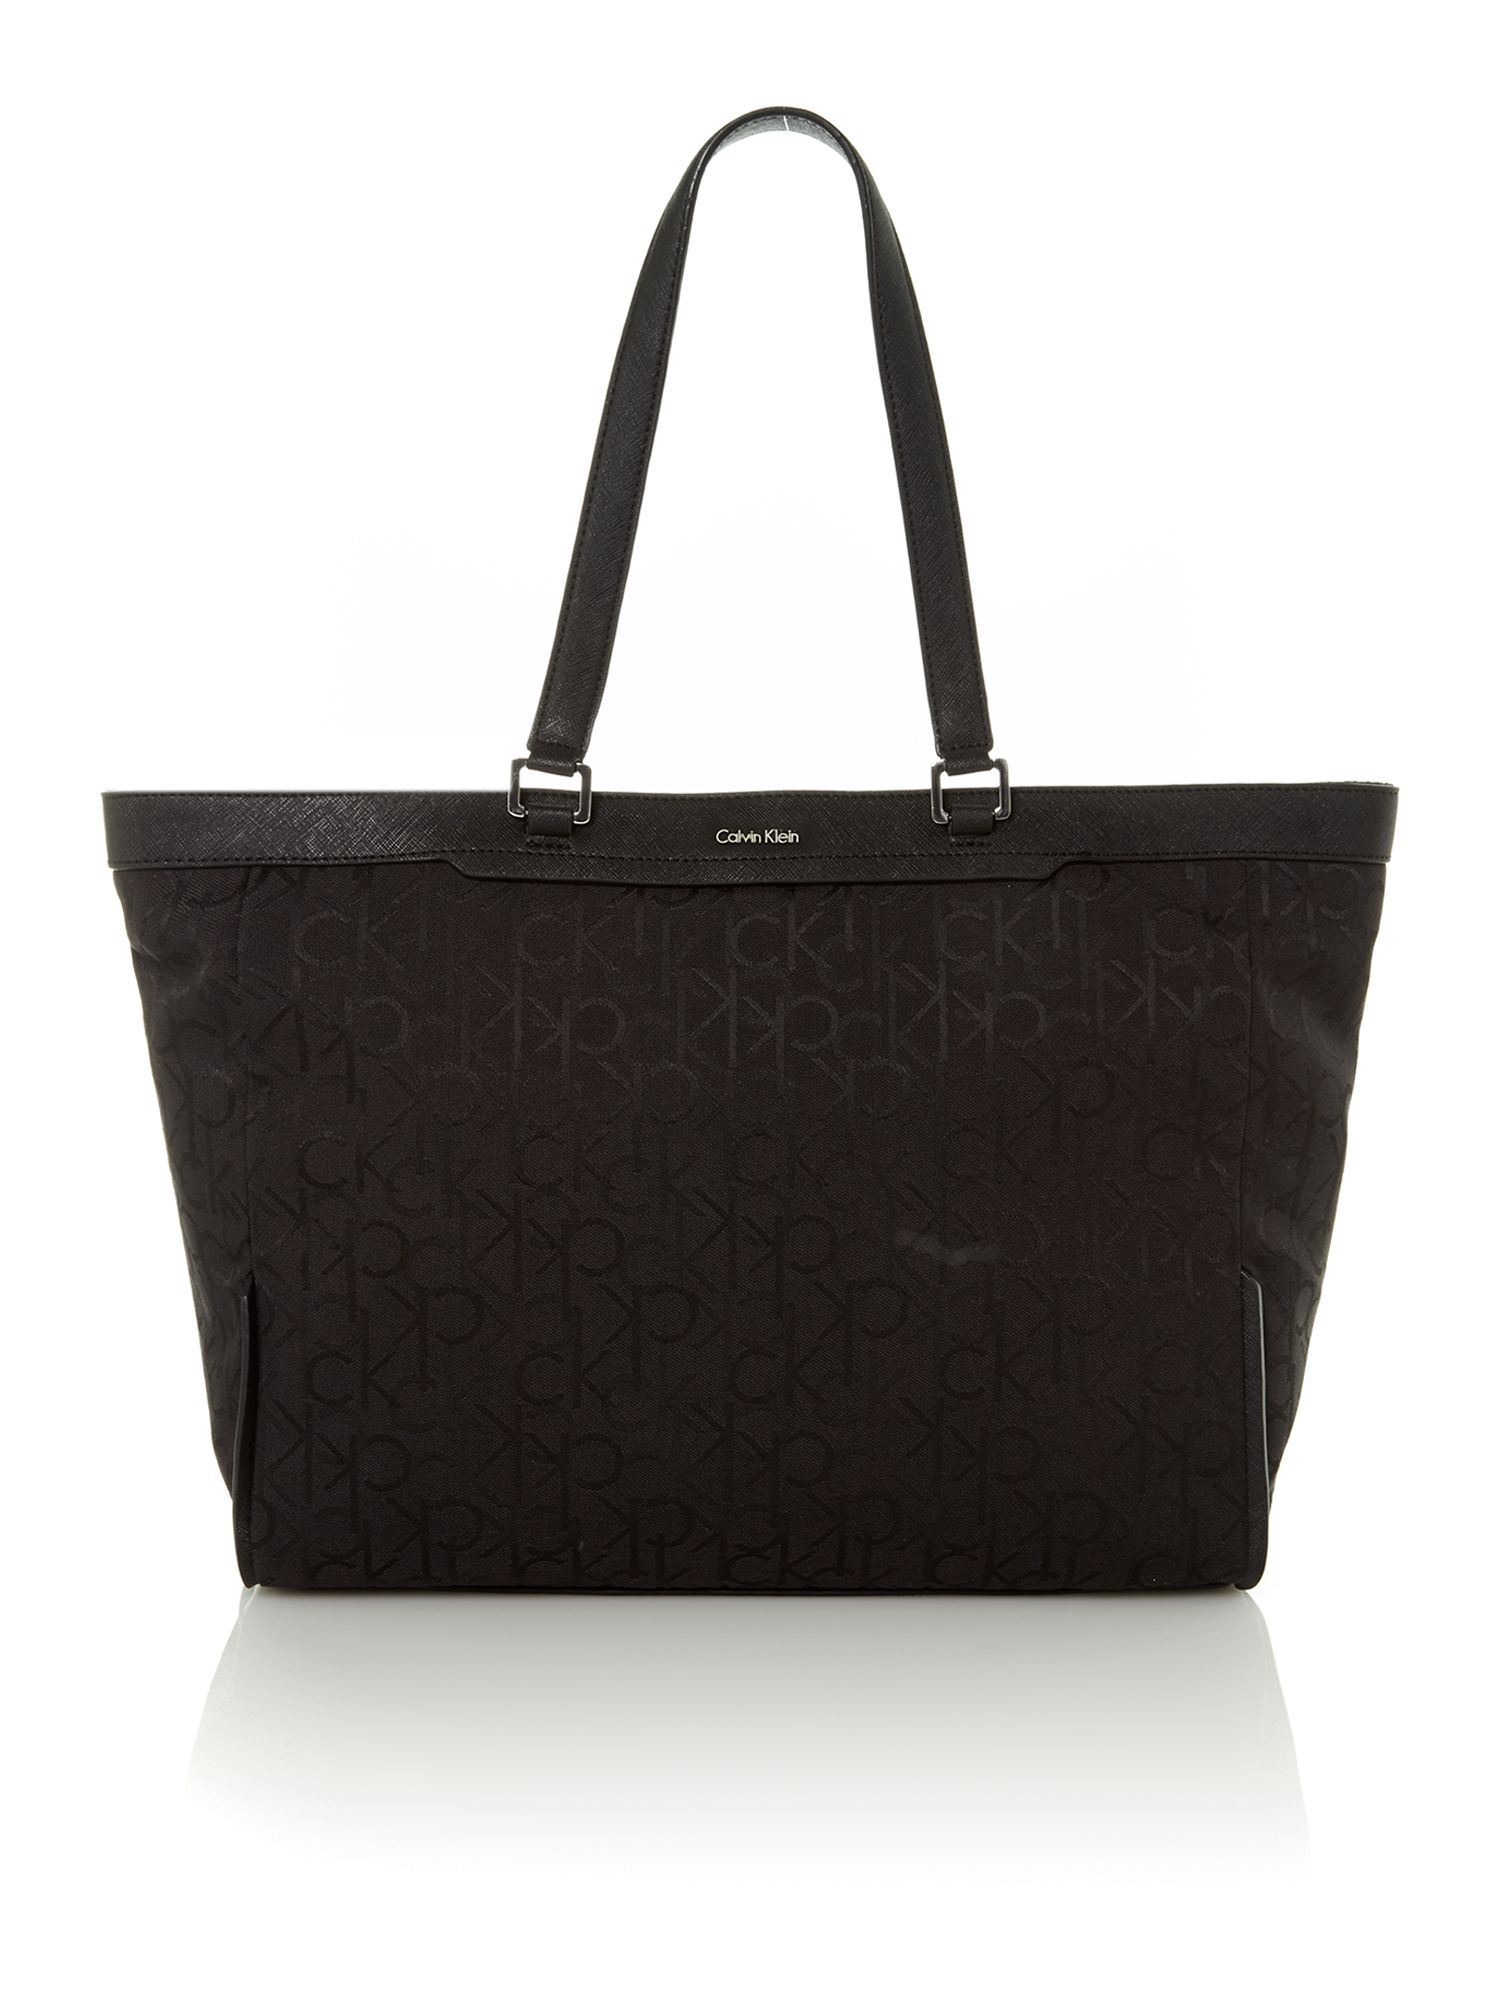 Jaquard logo black tote bag